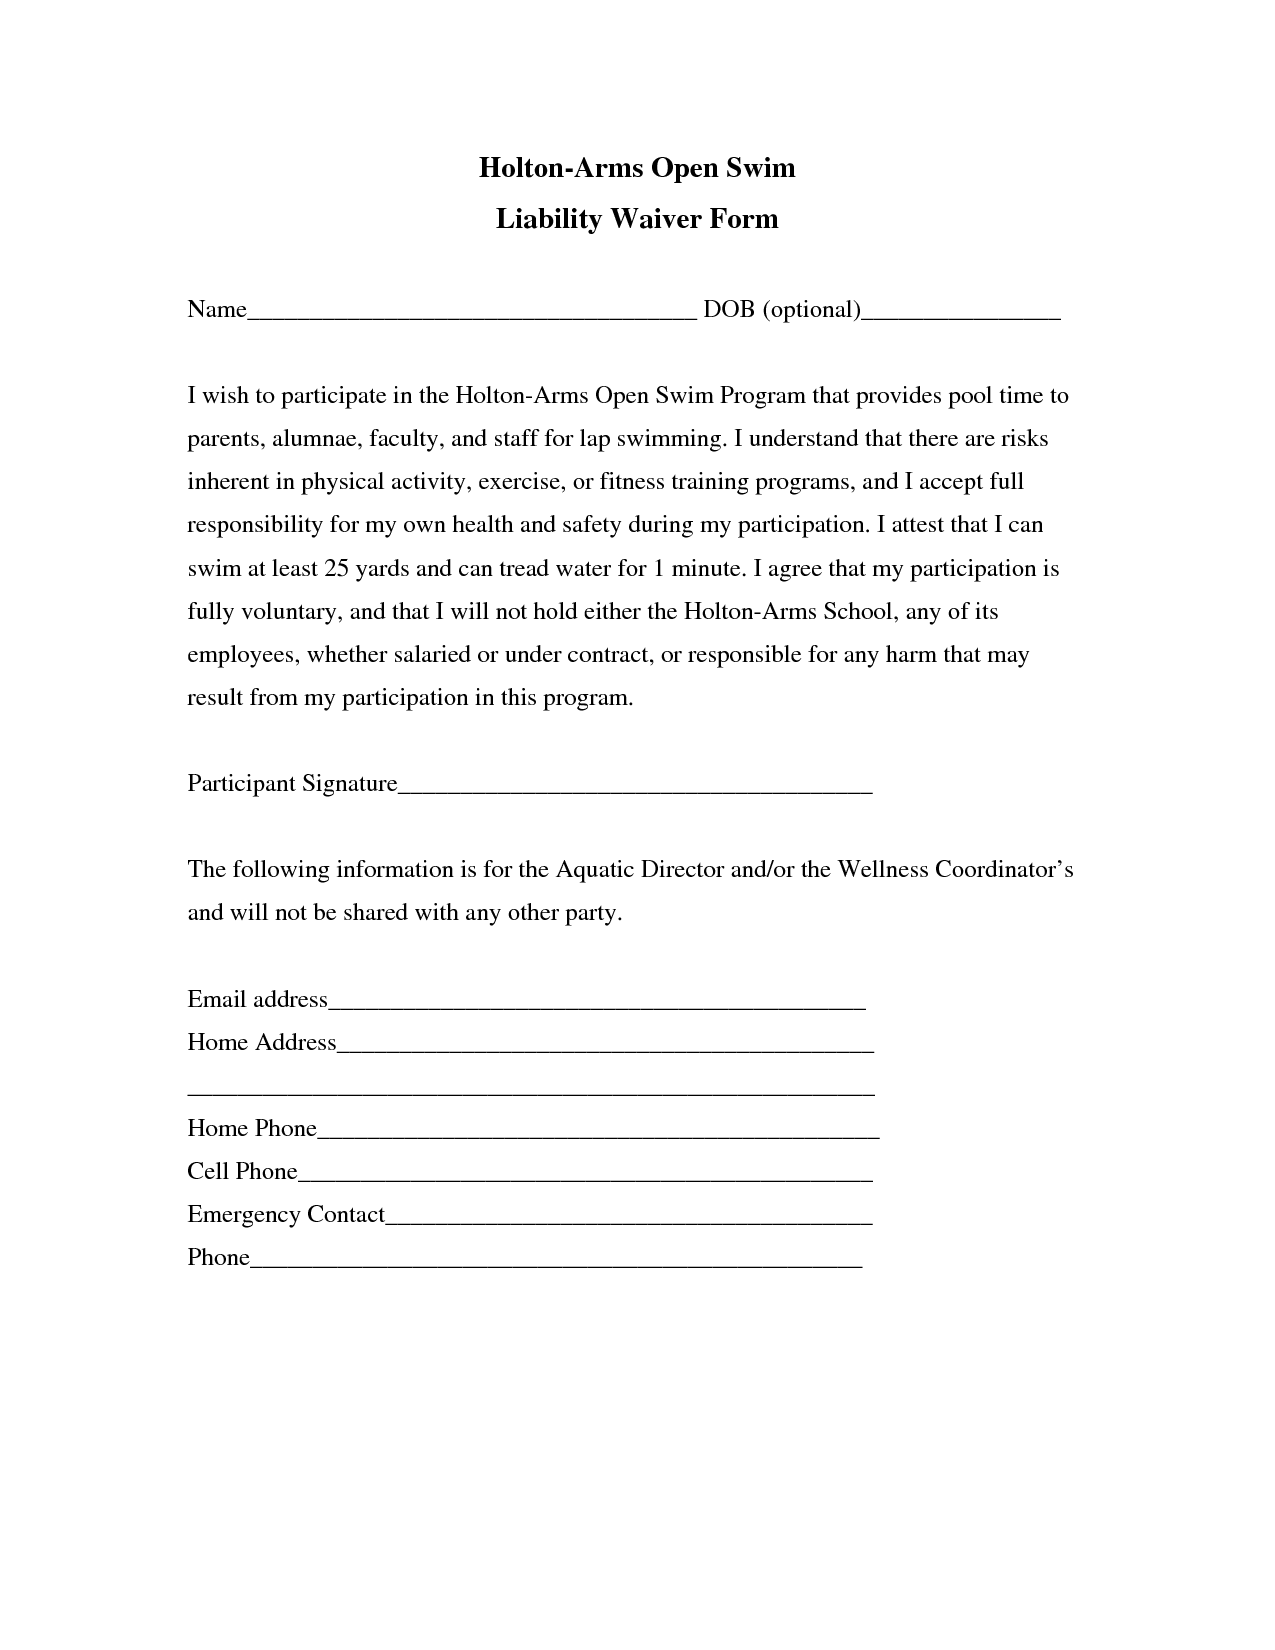 Liability insurance liability insurance waiver template for Participation waiver template